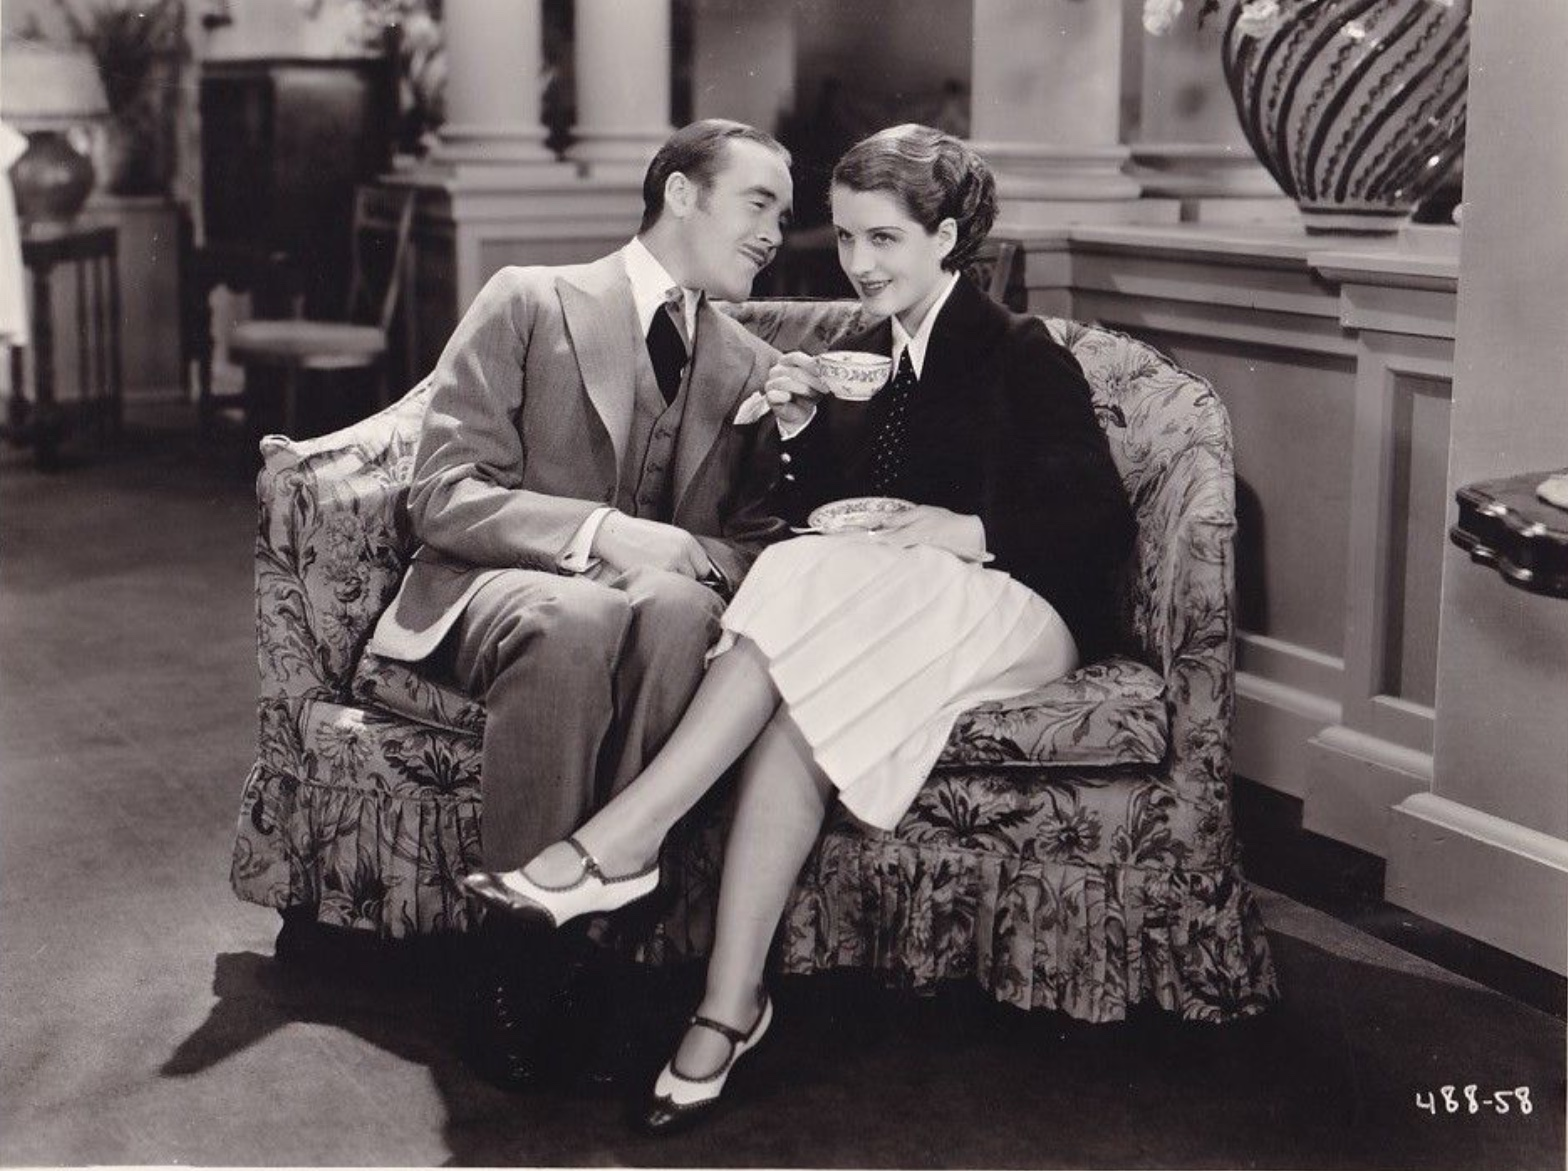 Tyrell Davis and Norma Shearer in Let Us Be Gay (1930)